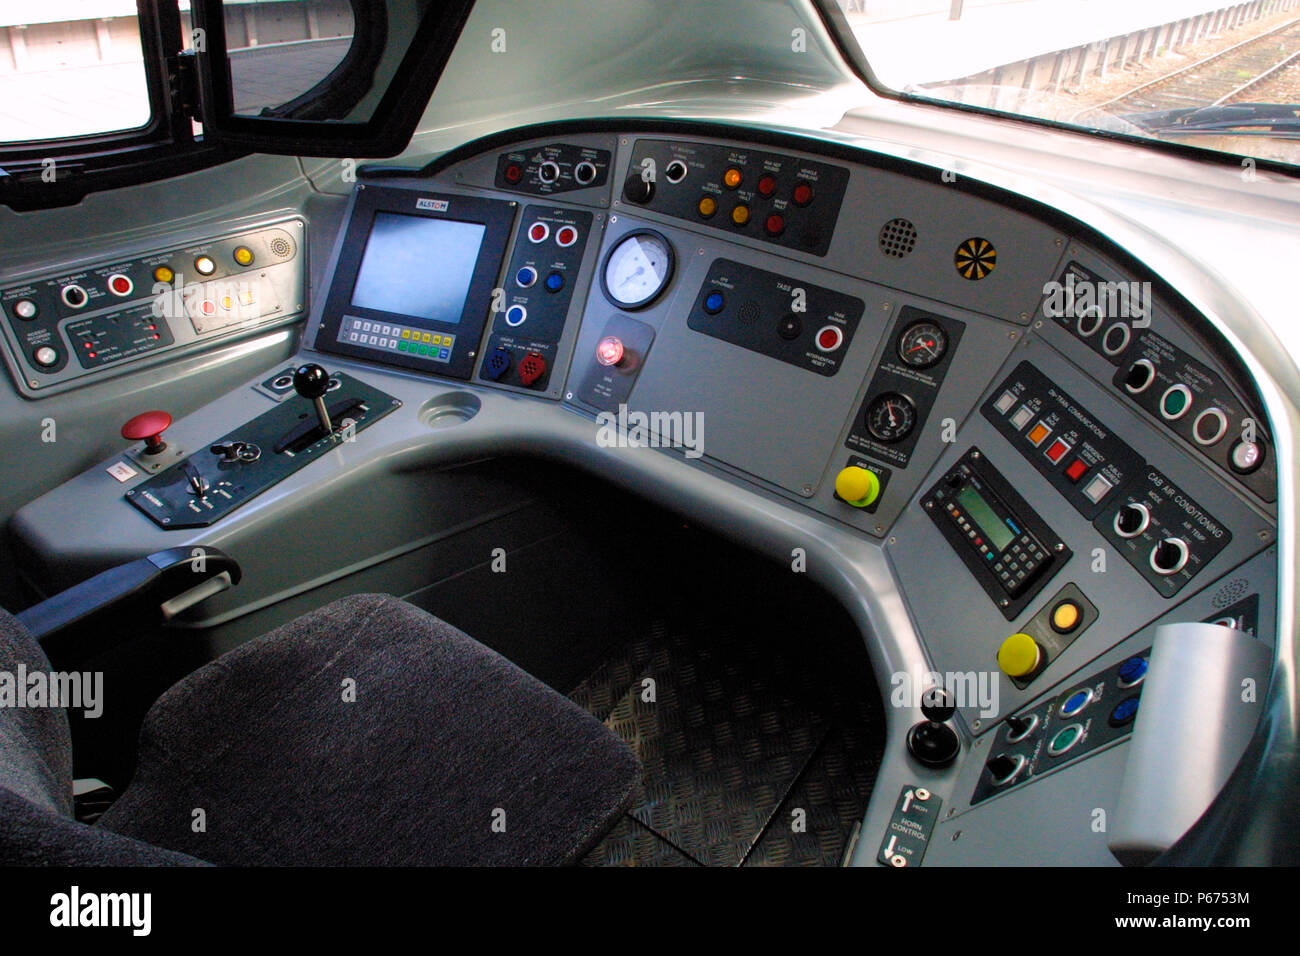 The interior of a Virgin Trains Penolino tilting trains cab. 2003. - Stock Image